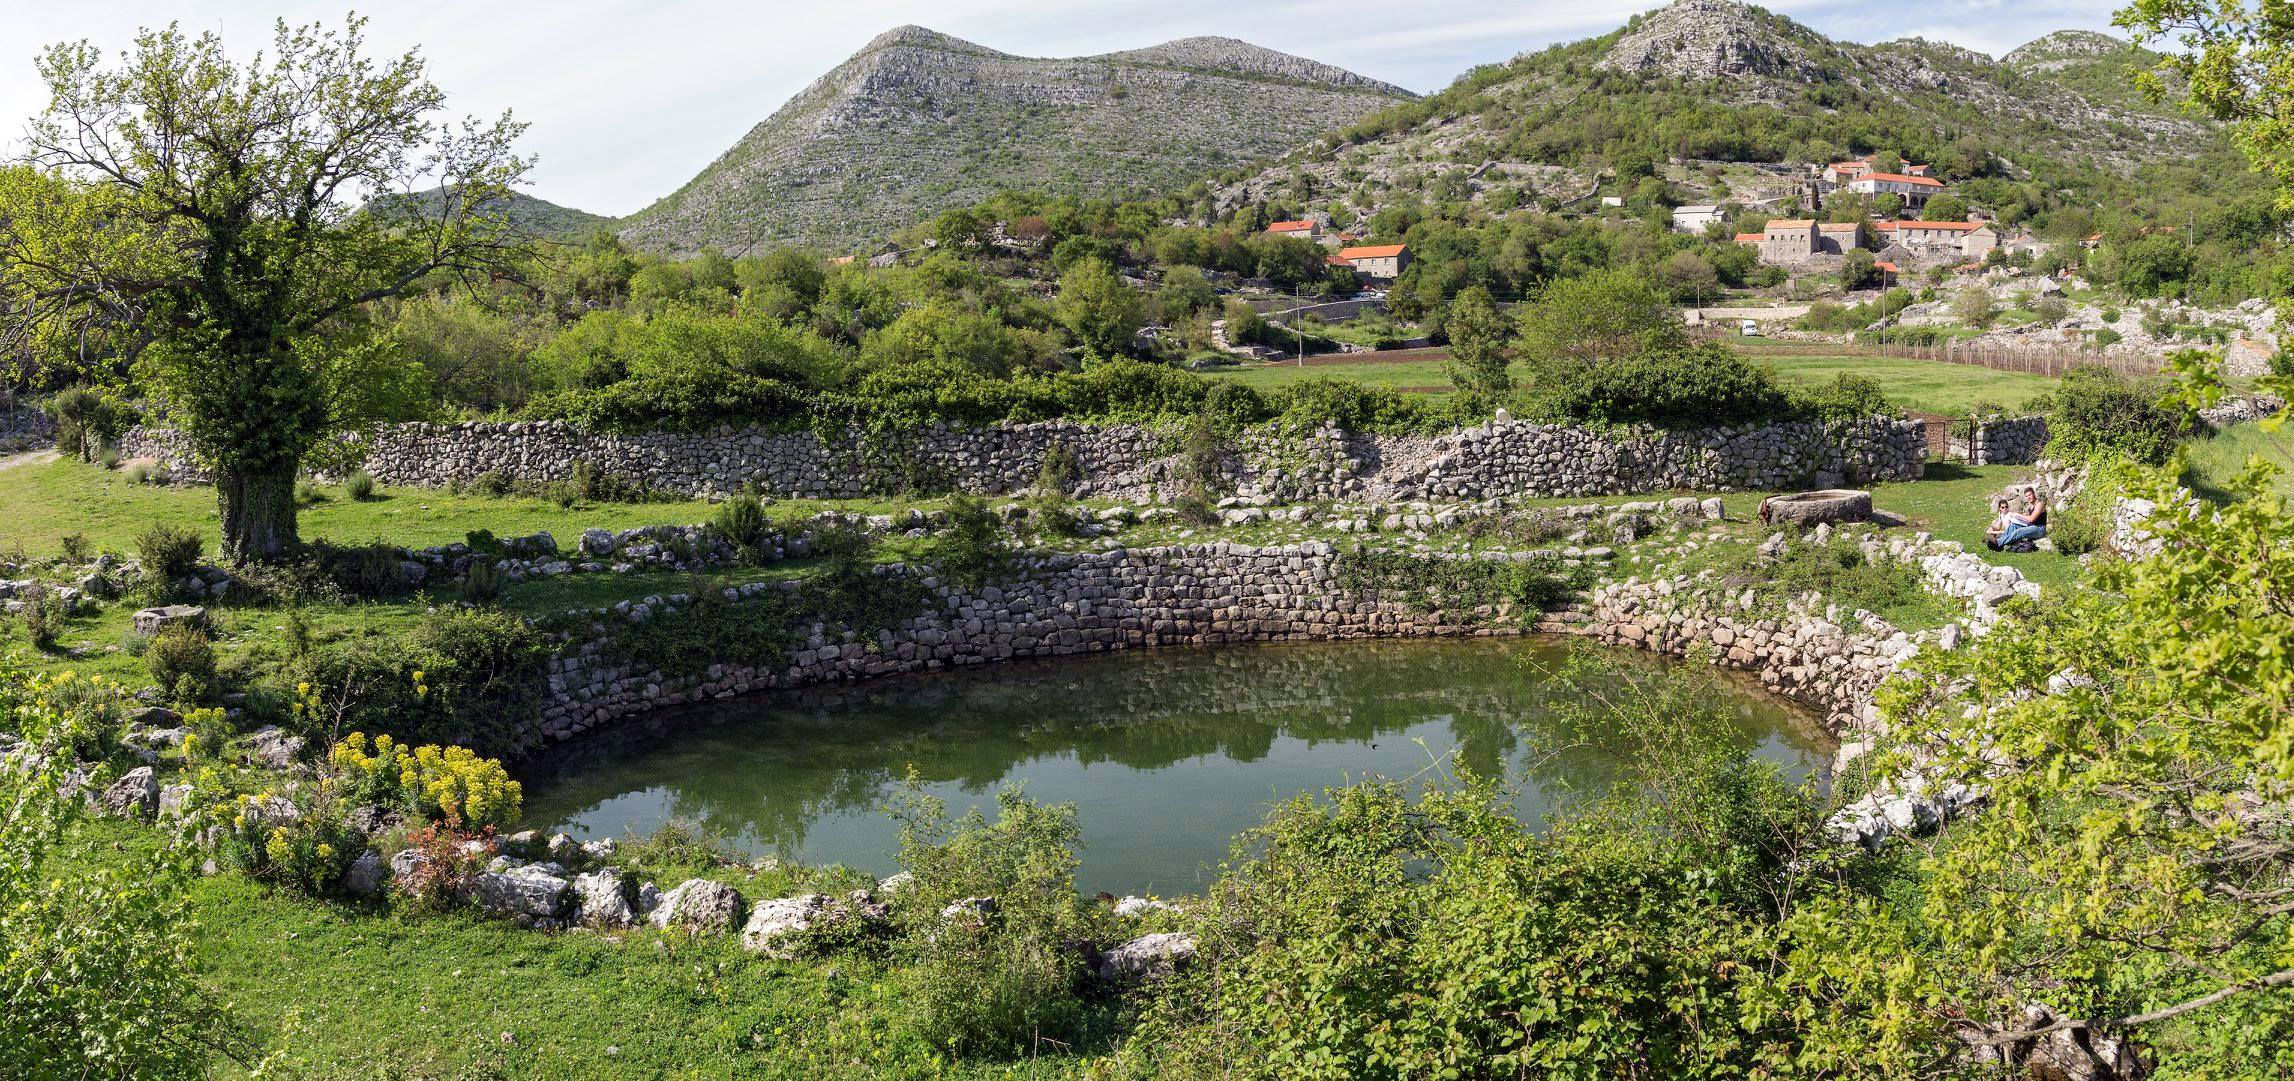 Dry stone pond in one of Konavle villages, 17m in diameter